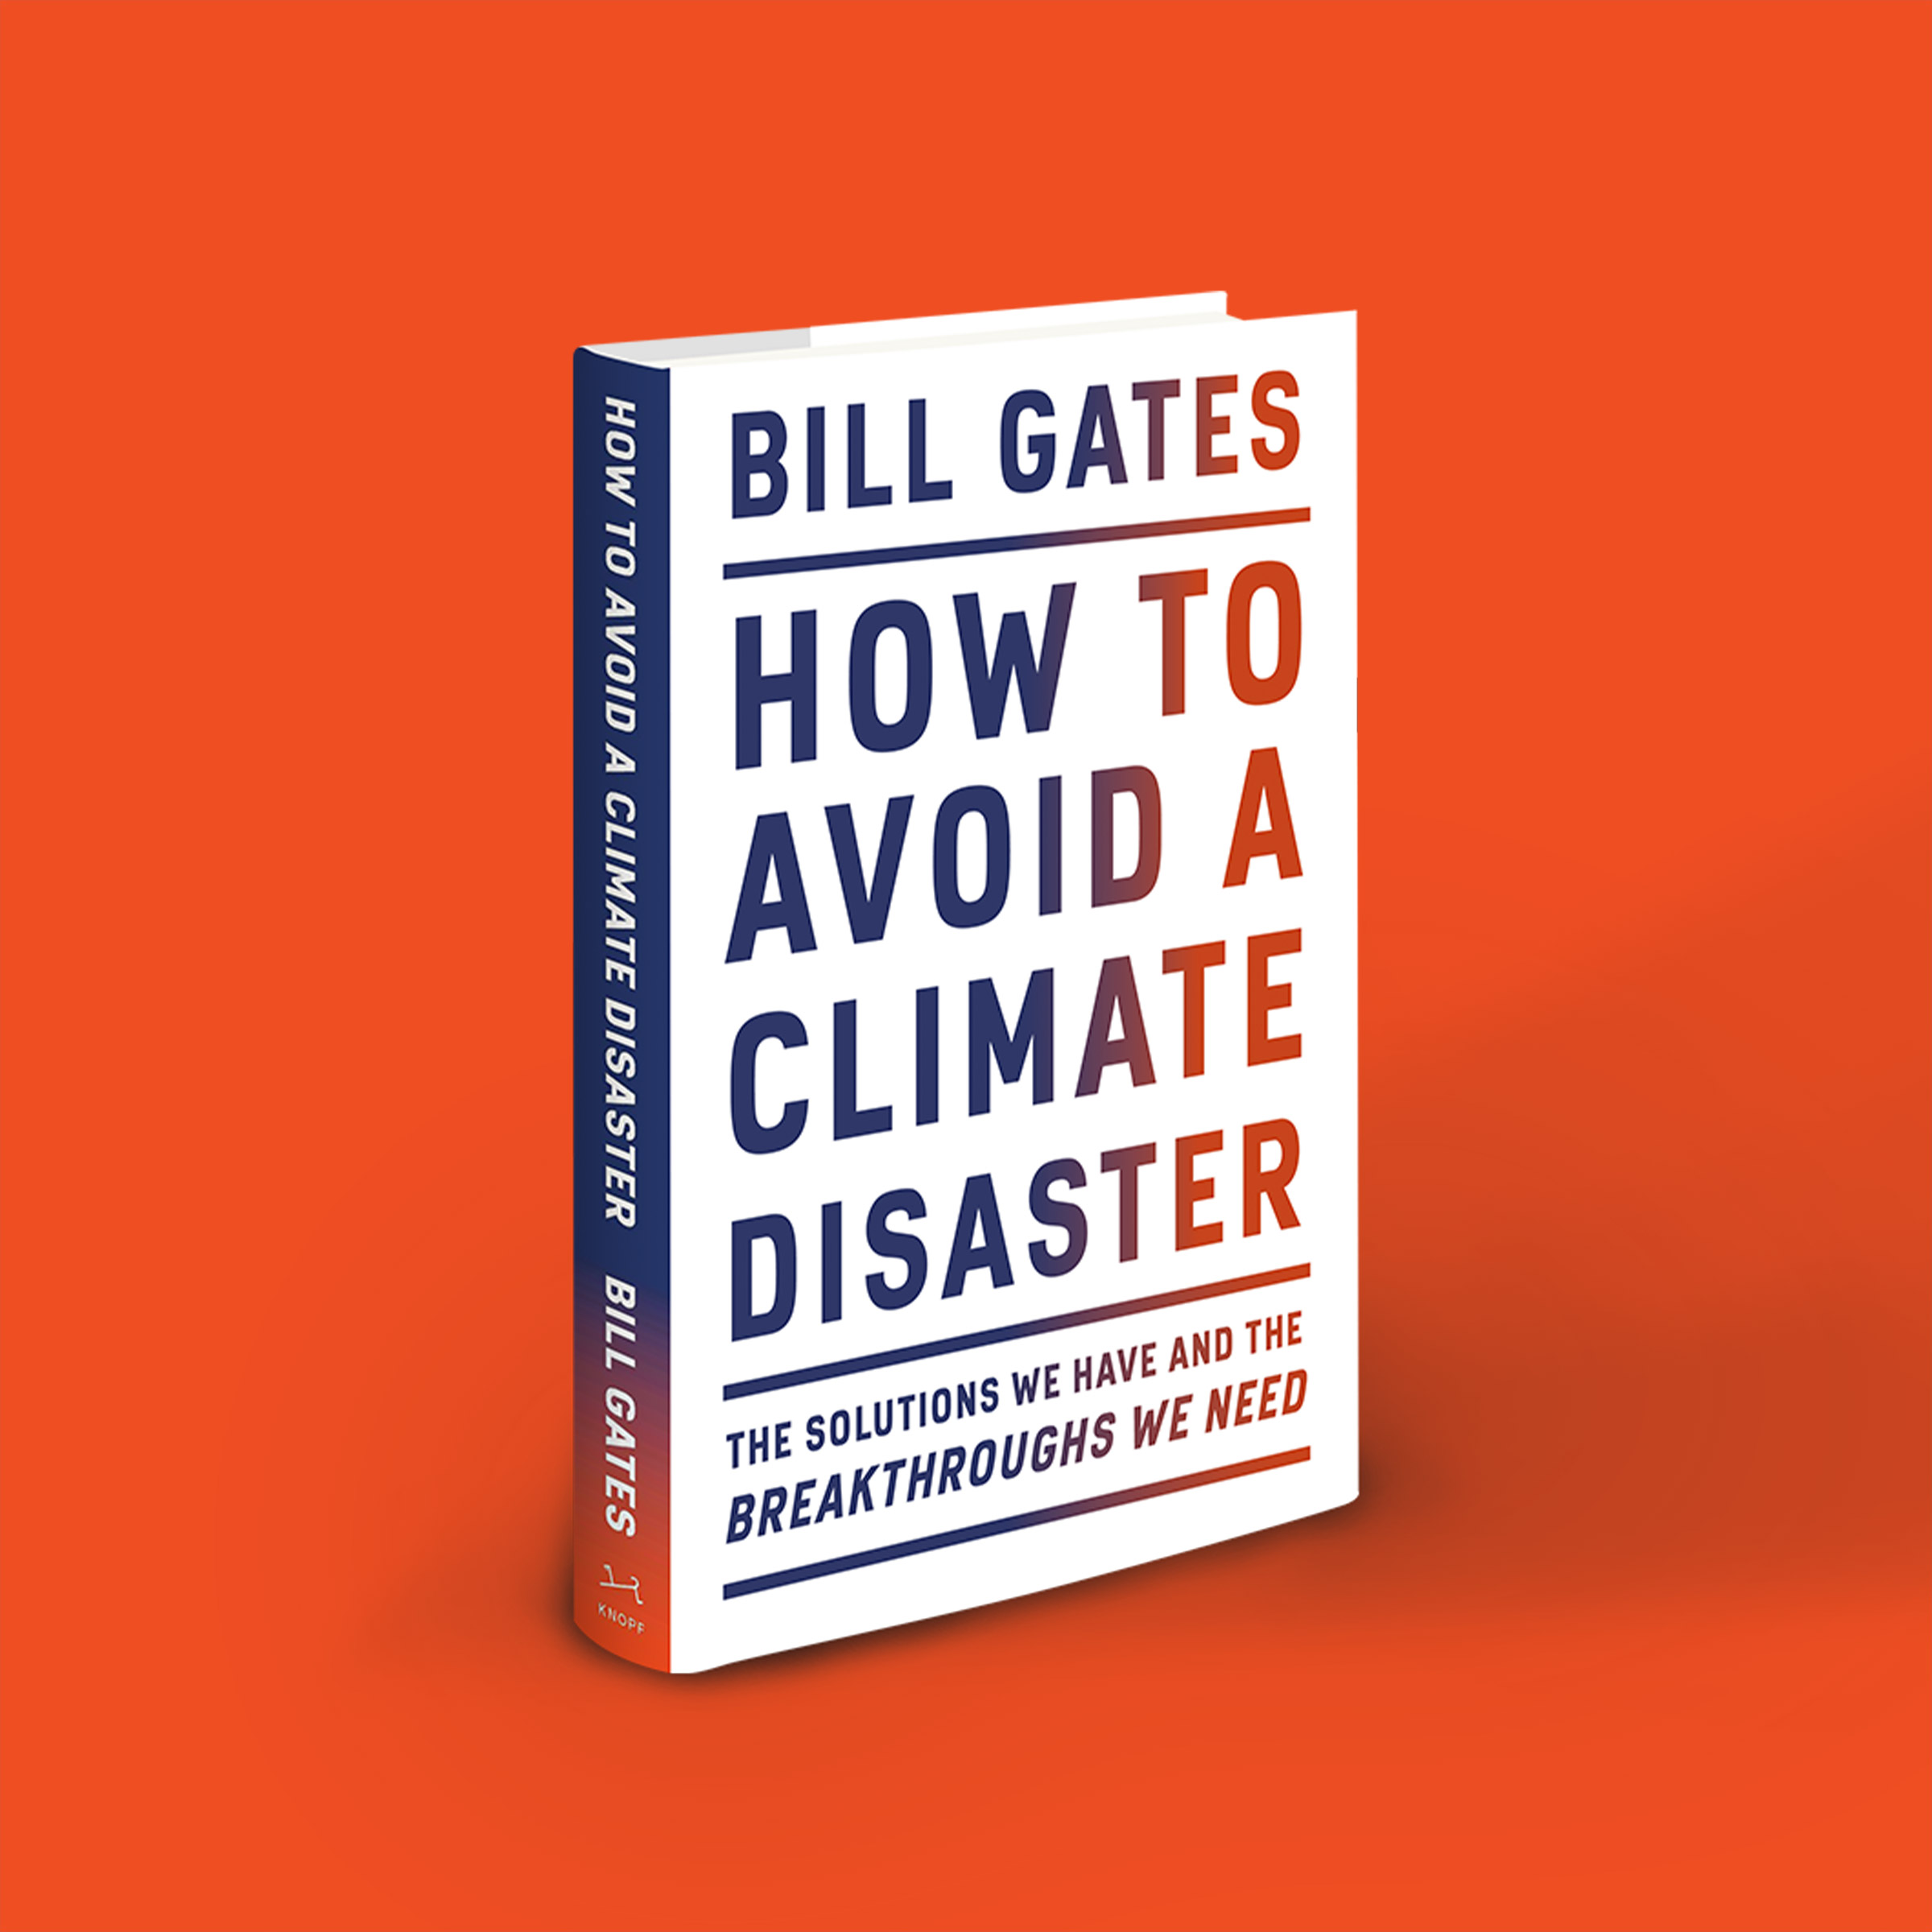 How to Avoid a Climate Disaster Excerpt